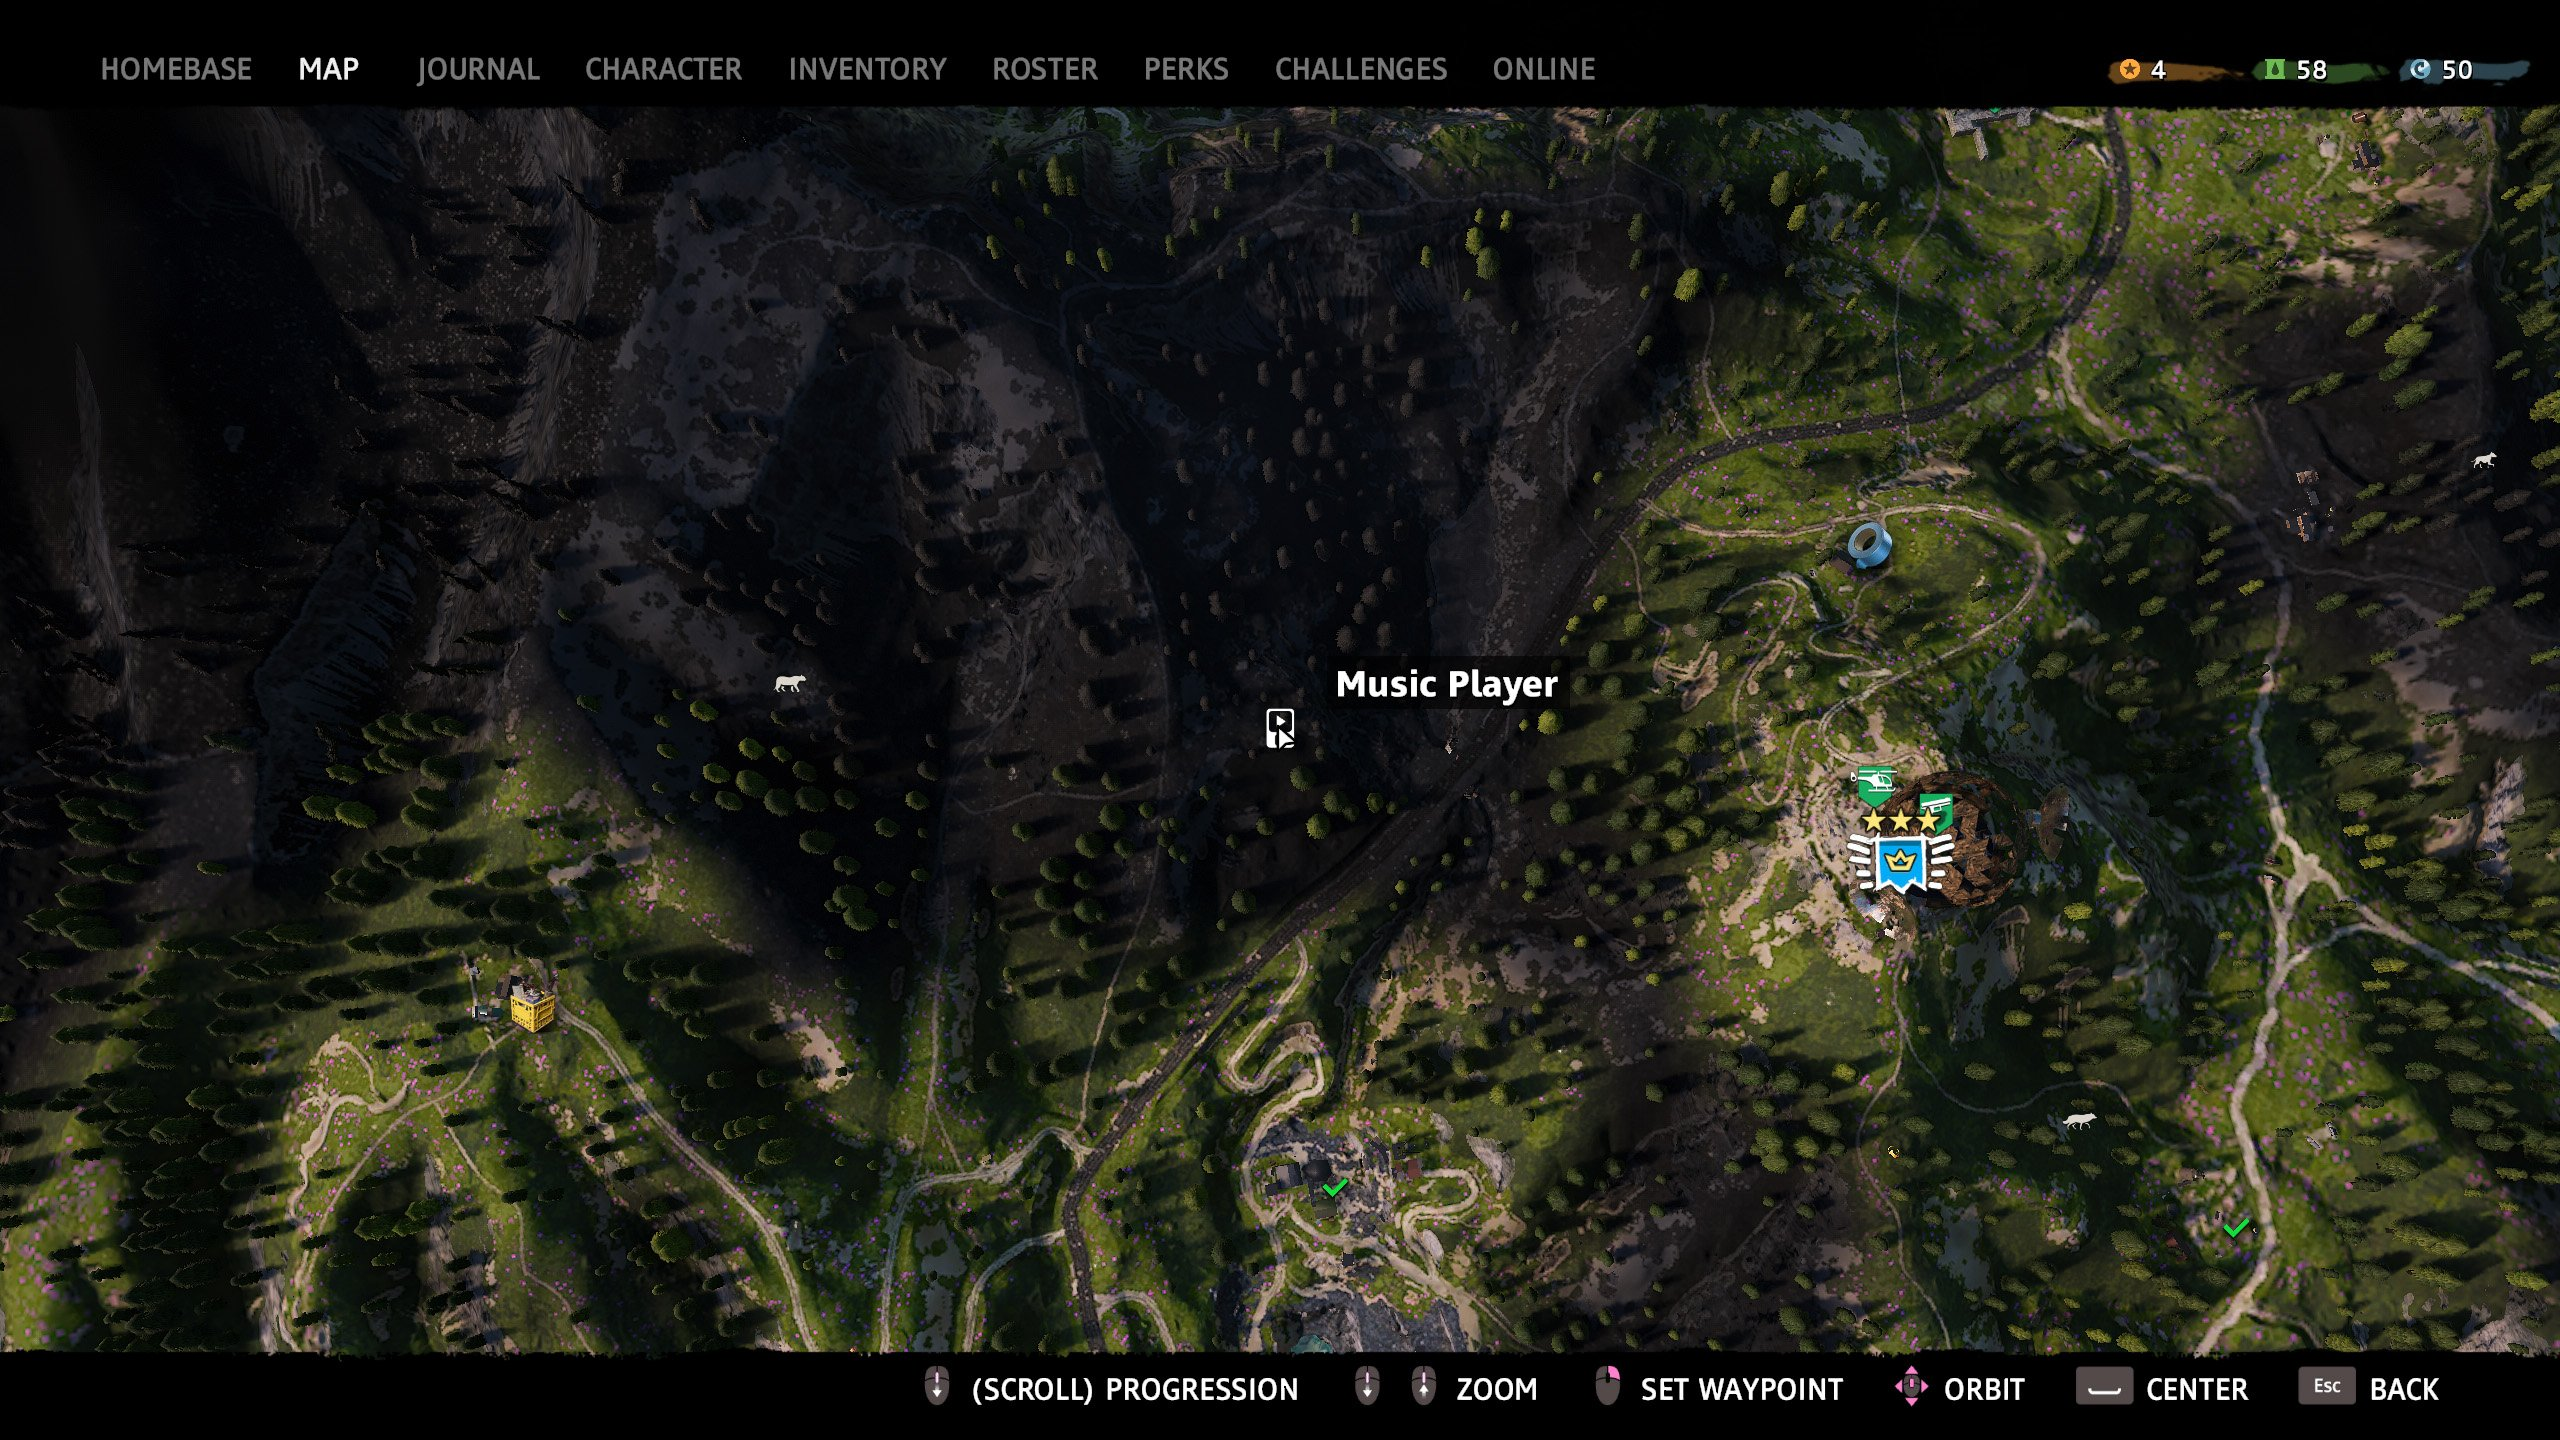 far cry new dawn music player 5 map